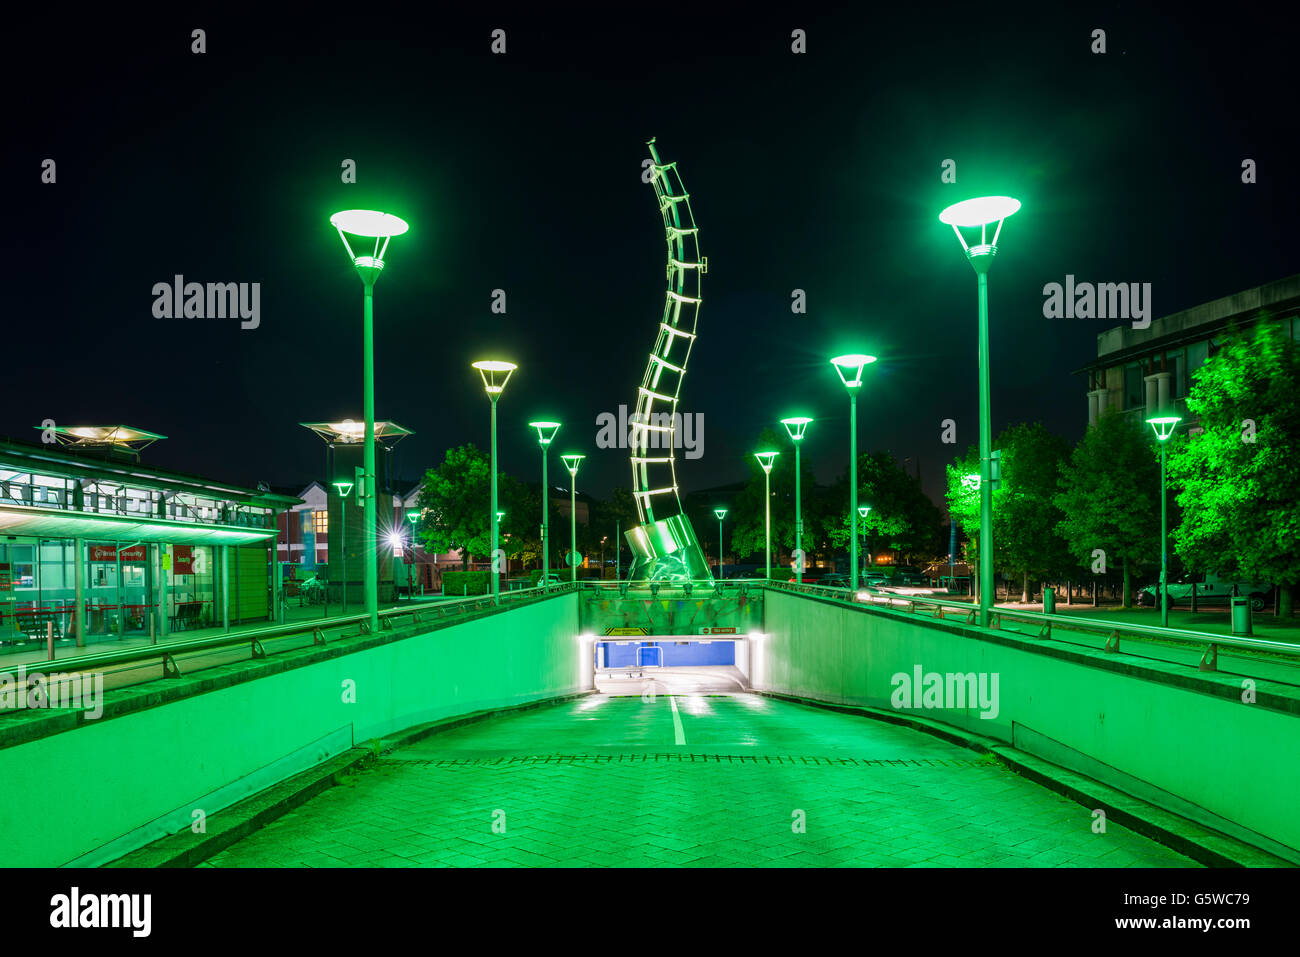 A night time urban scene of the entrance to the Millennium Square car park in the Ciry of Bristol, England. - Stock Image